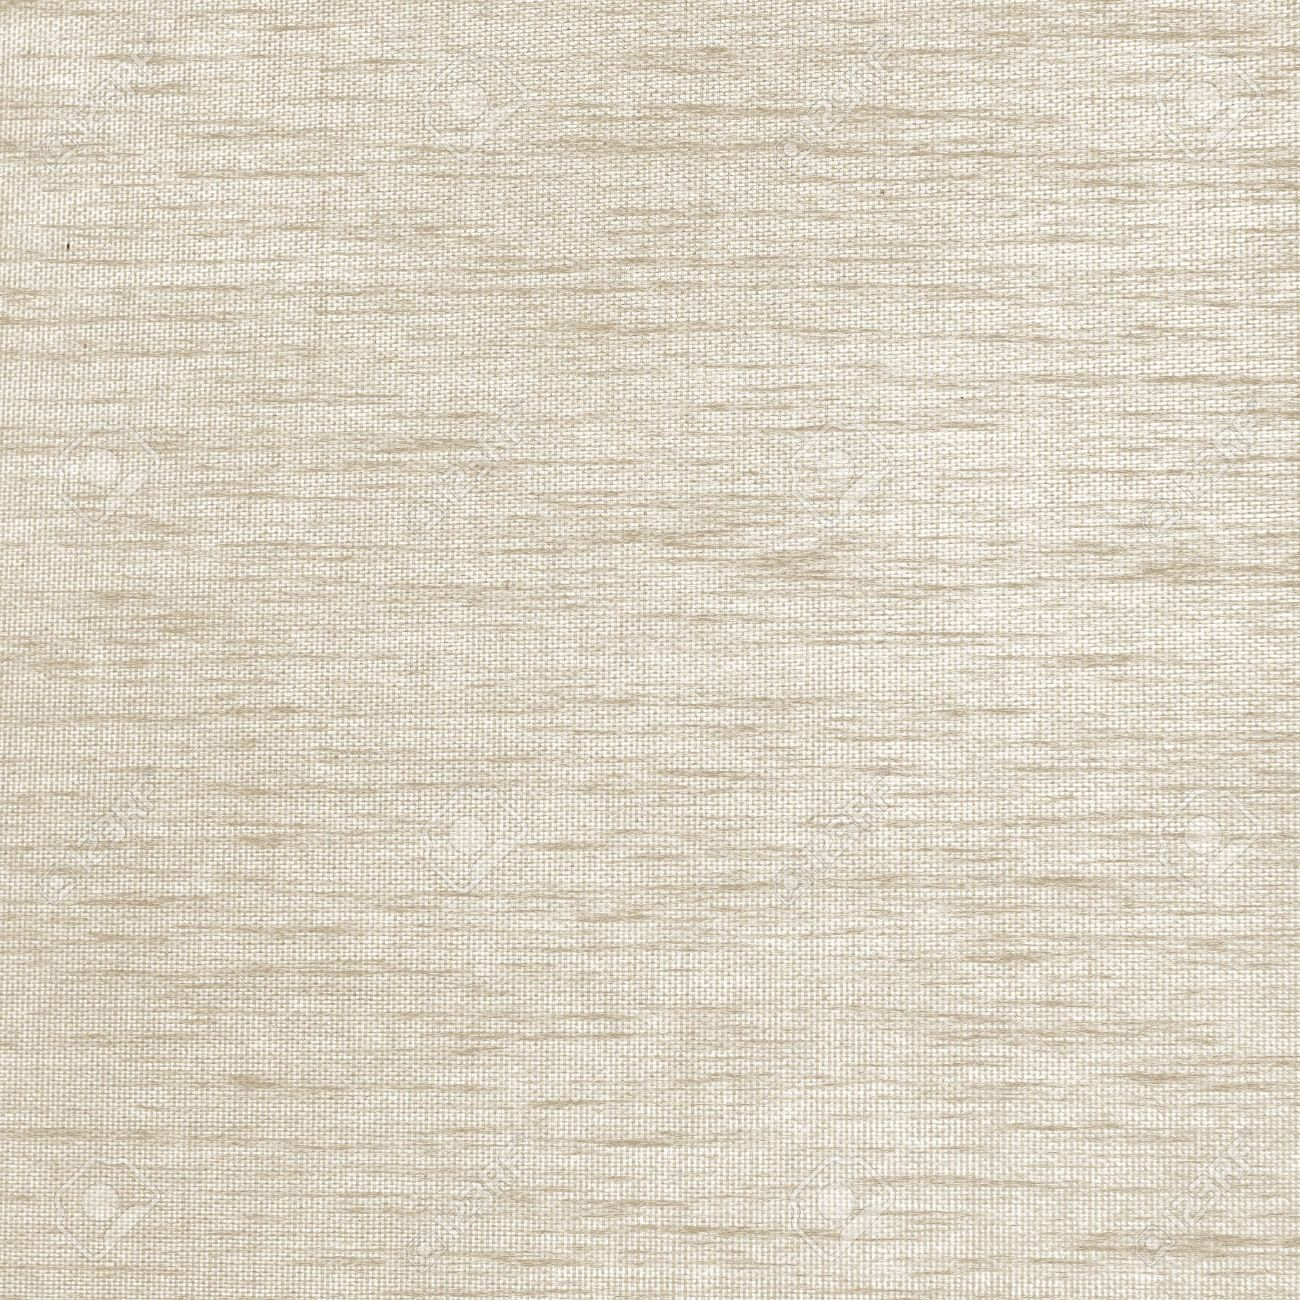 beige carpet texture. Beige Canvas Background Carpet Texture With Horizontal Stripes Seamless Pattern Stock Photo - 16296280